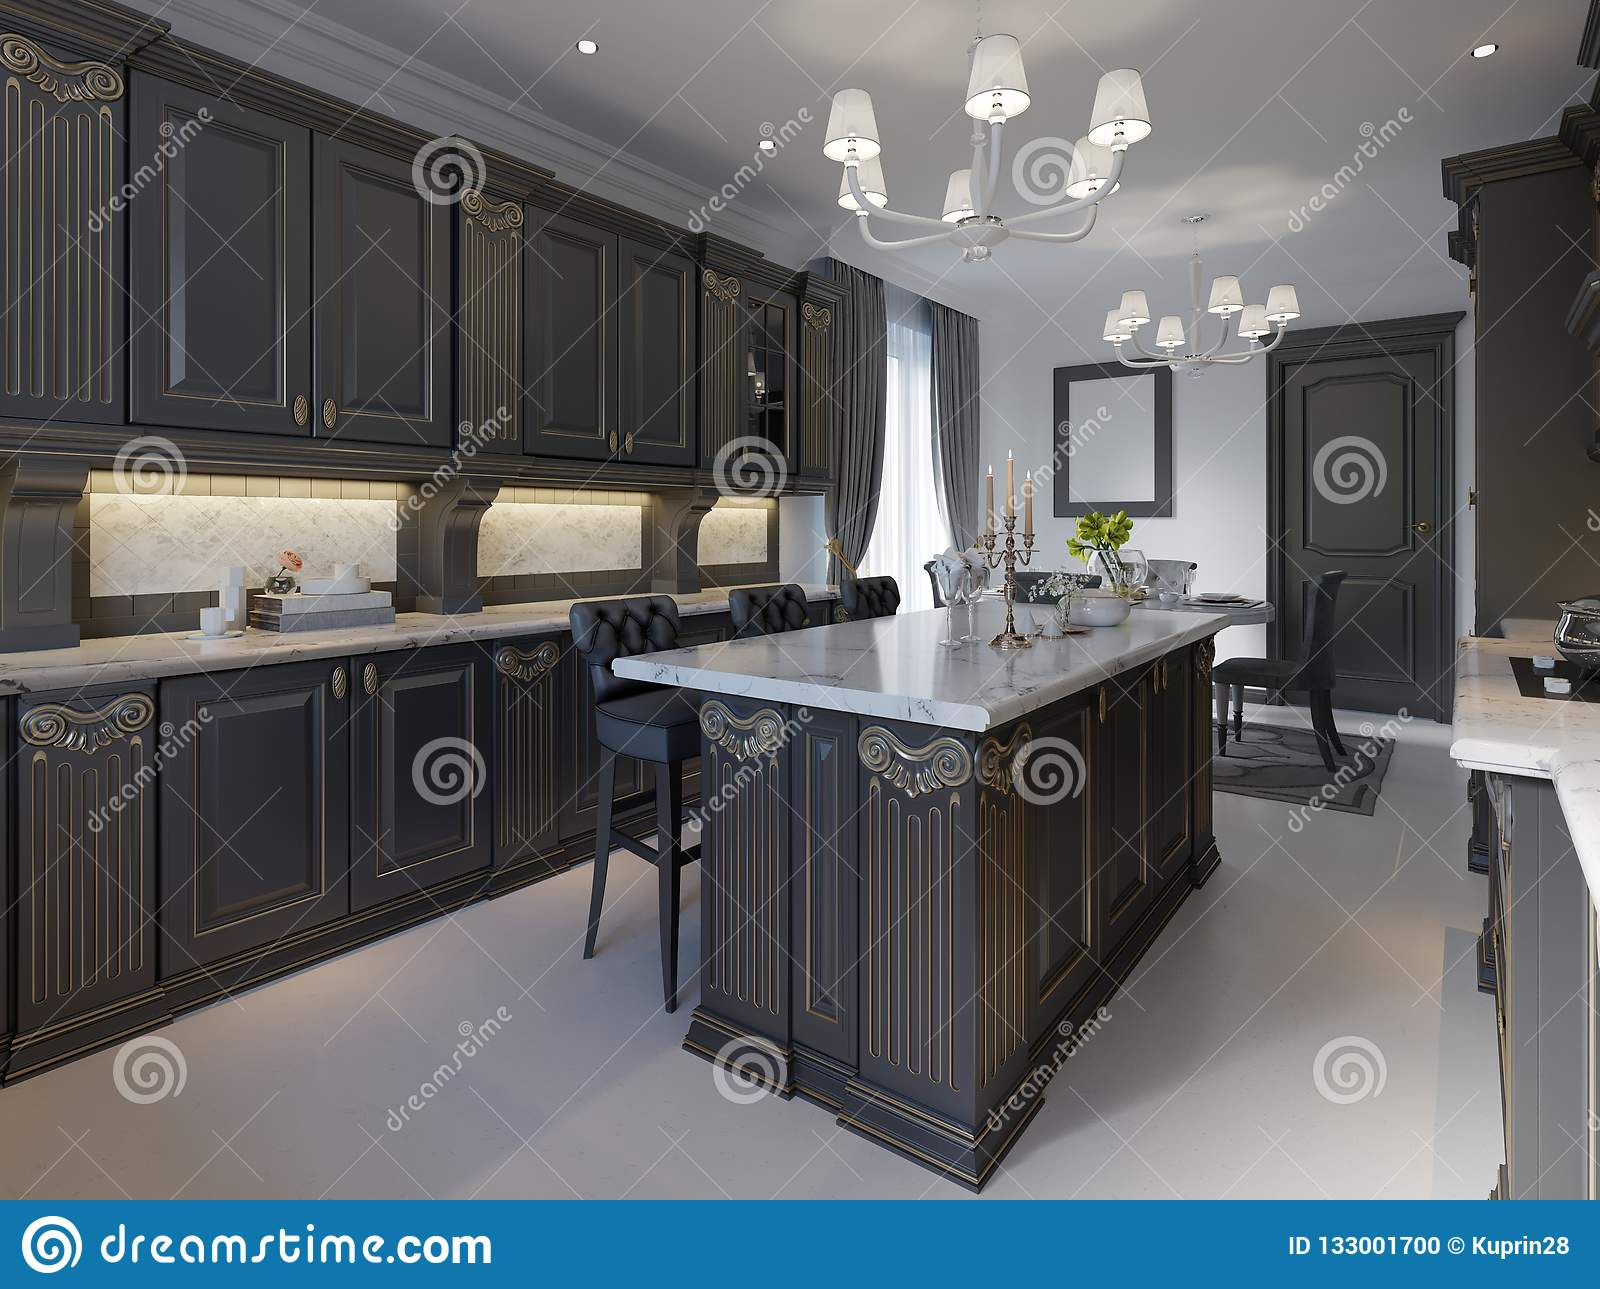 Modern Classic Kitchen Design With Black Cabinets And White Marble